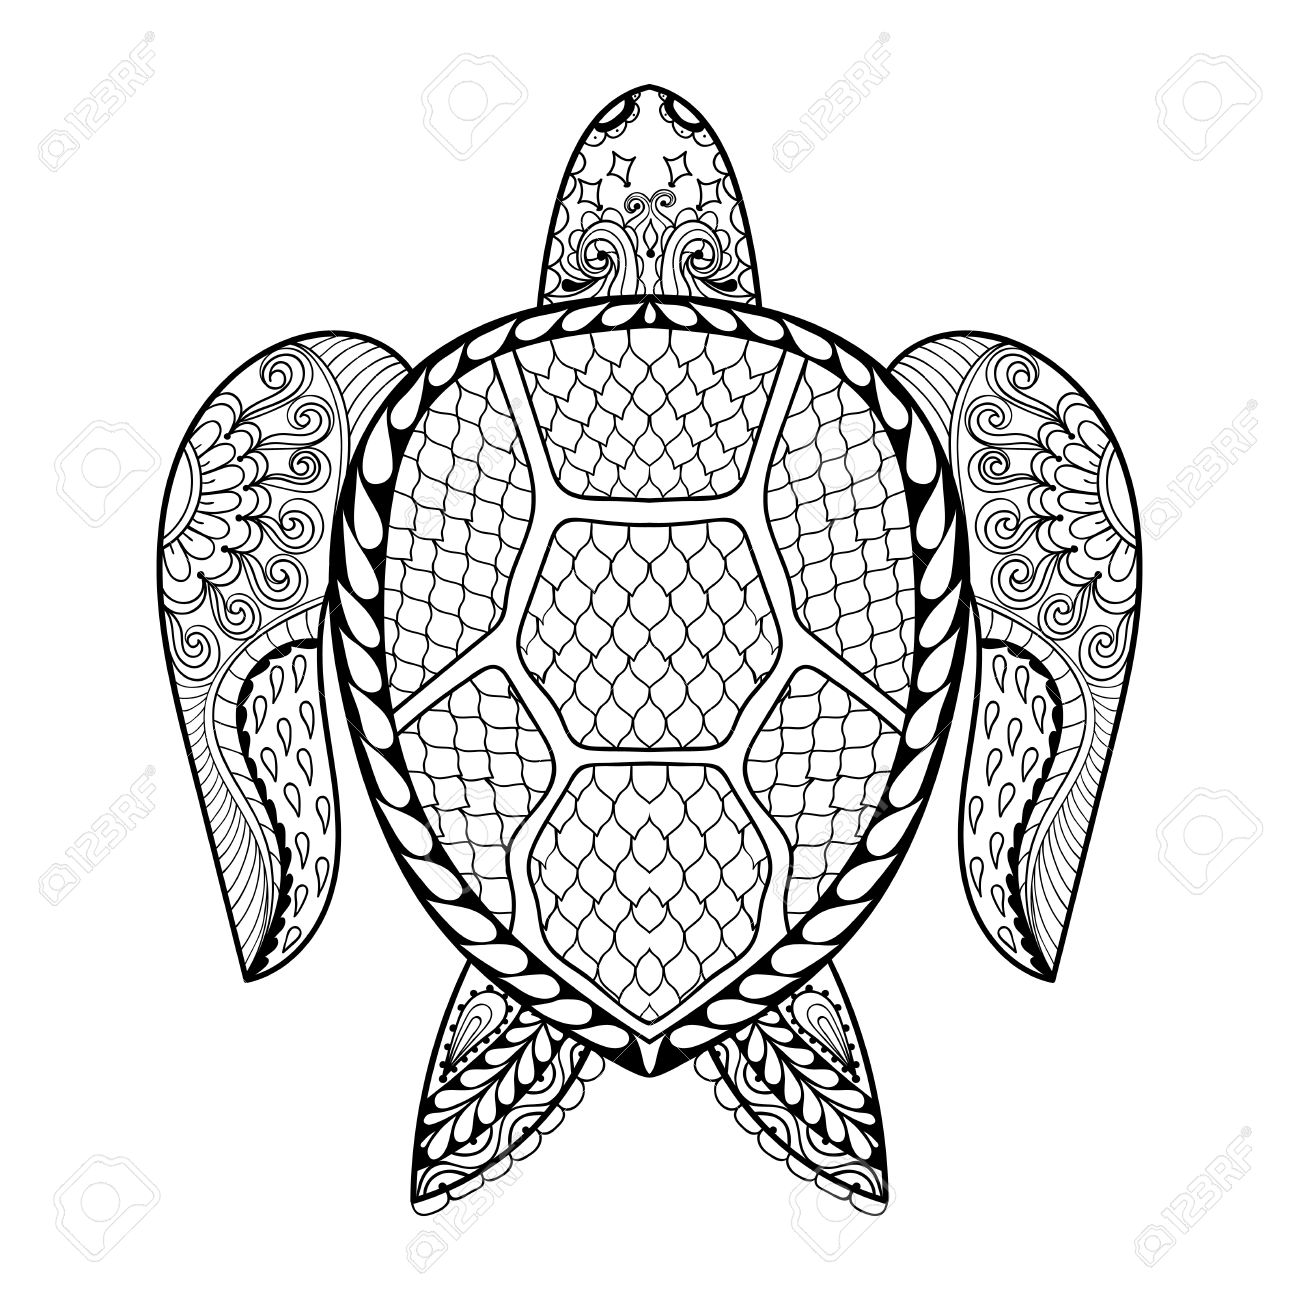 1299x1300 Hand Drawn Sea Turtle Mascot For Adult Coloring Pages In Doodle